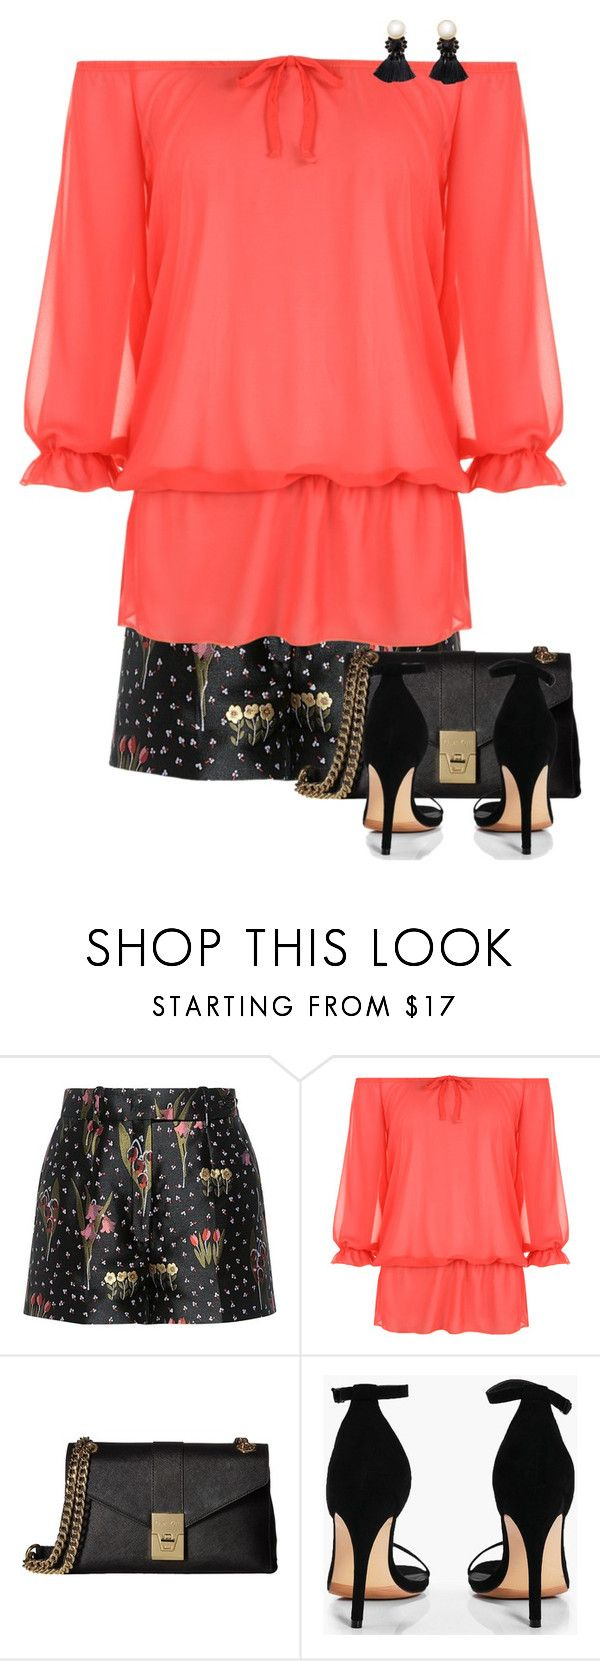 """""""Dress Up Your Shorts"""" by mcheffer ❤ liked on Polyvore featuring RED Valentino, WearAll, Calvin Klein, Boohoo, Violeta by Mango, shorts and prints"""